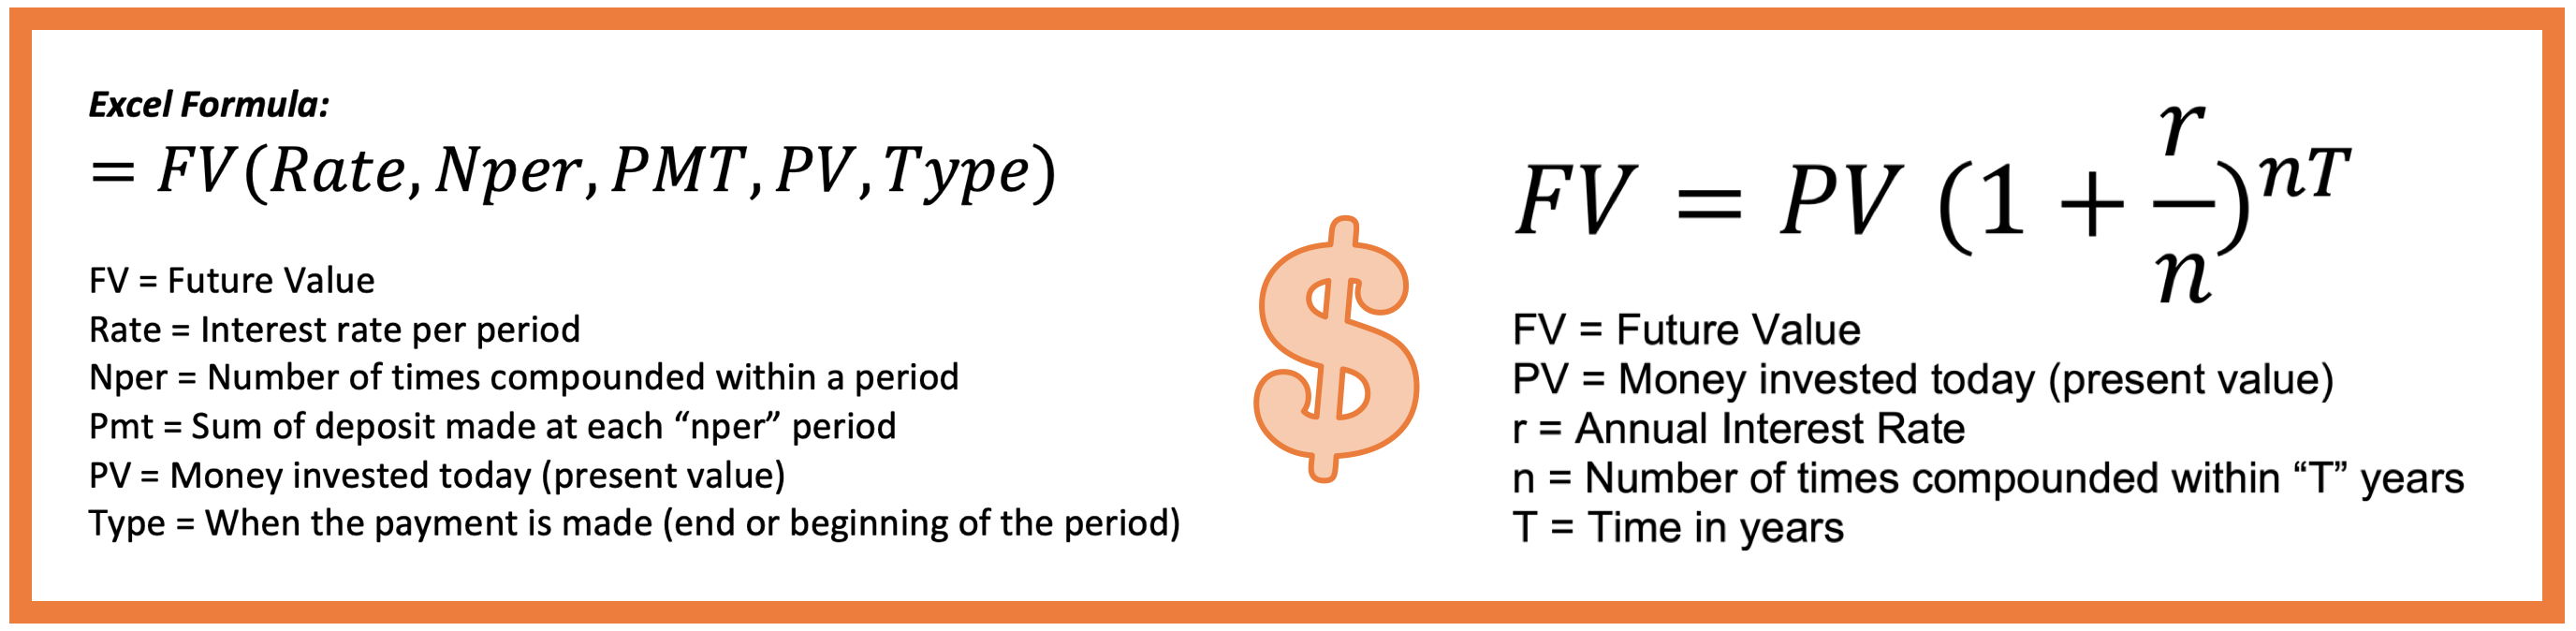 future value formula for excel and for mathematical terms.